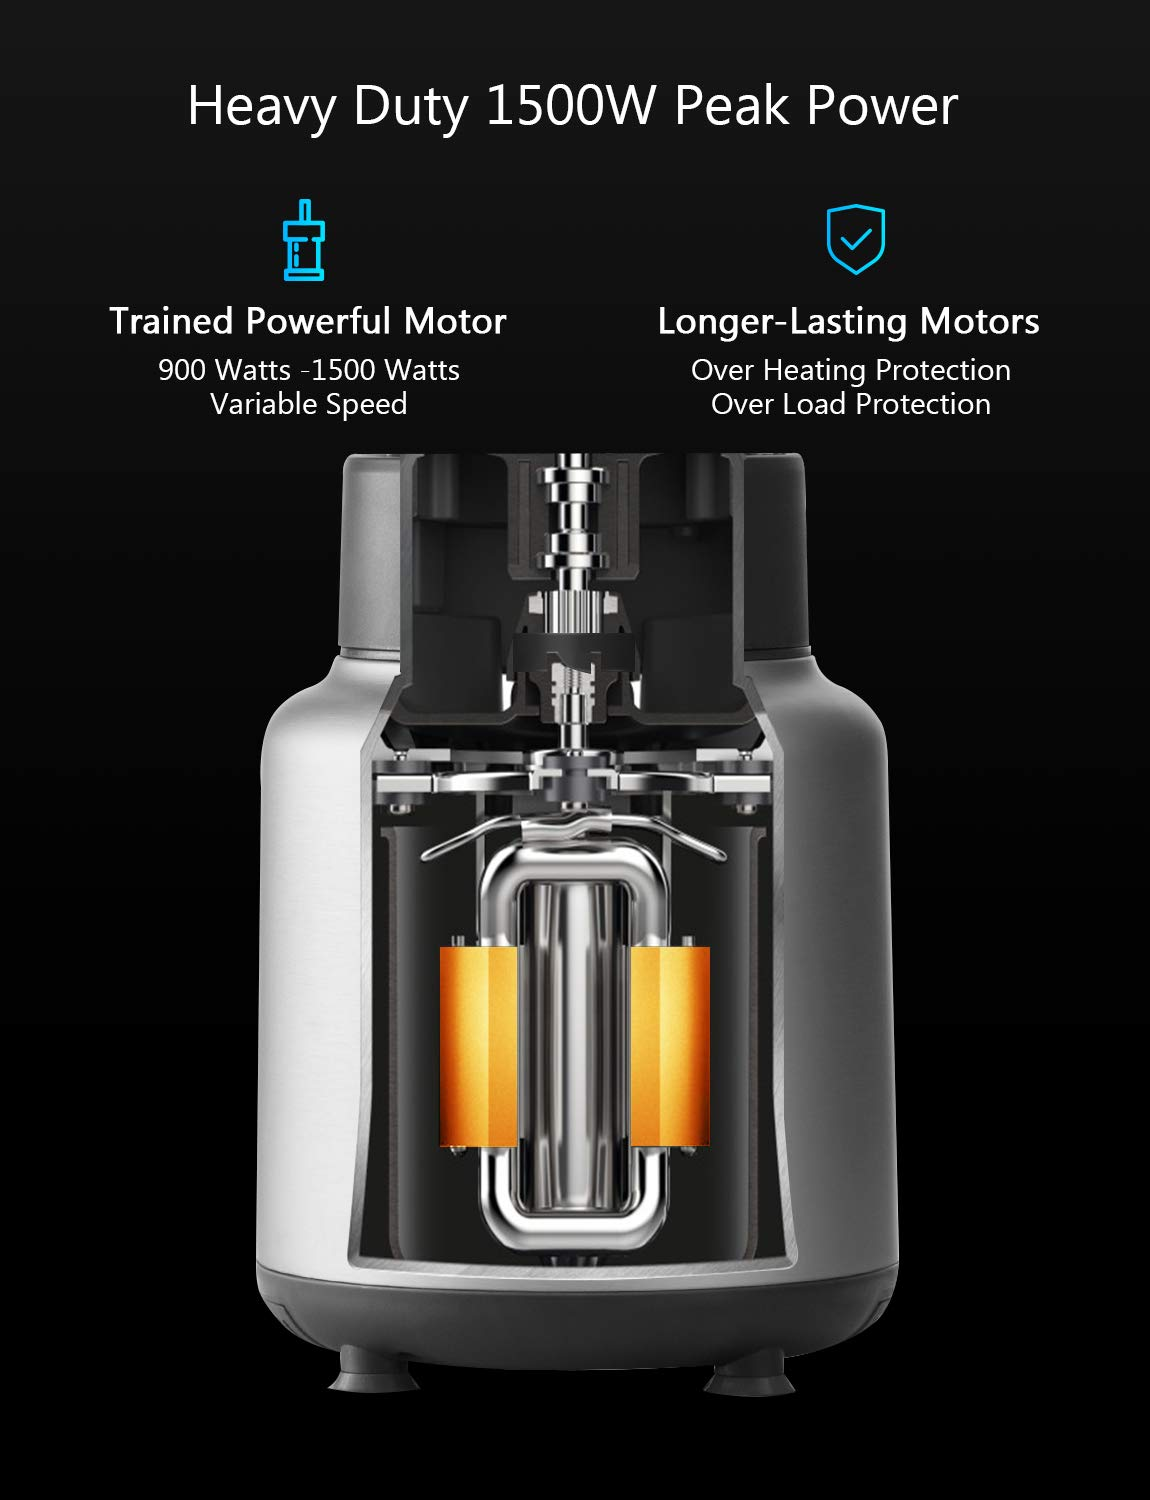 Smoothie Blender 1500W, Willsence Personal blender for Shakes and Smoothies, NUTRI-IQ Intelligent identification of Food Hardness, 2 x 24 oz to-go Tritan Cups (BPA Free) with Spout Lids by Willsence (Image #5)